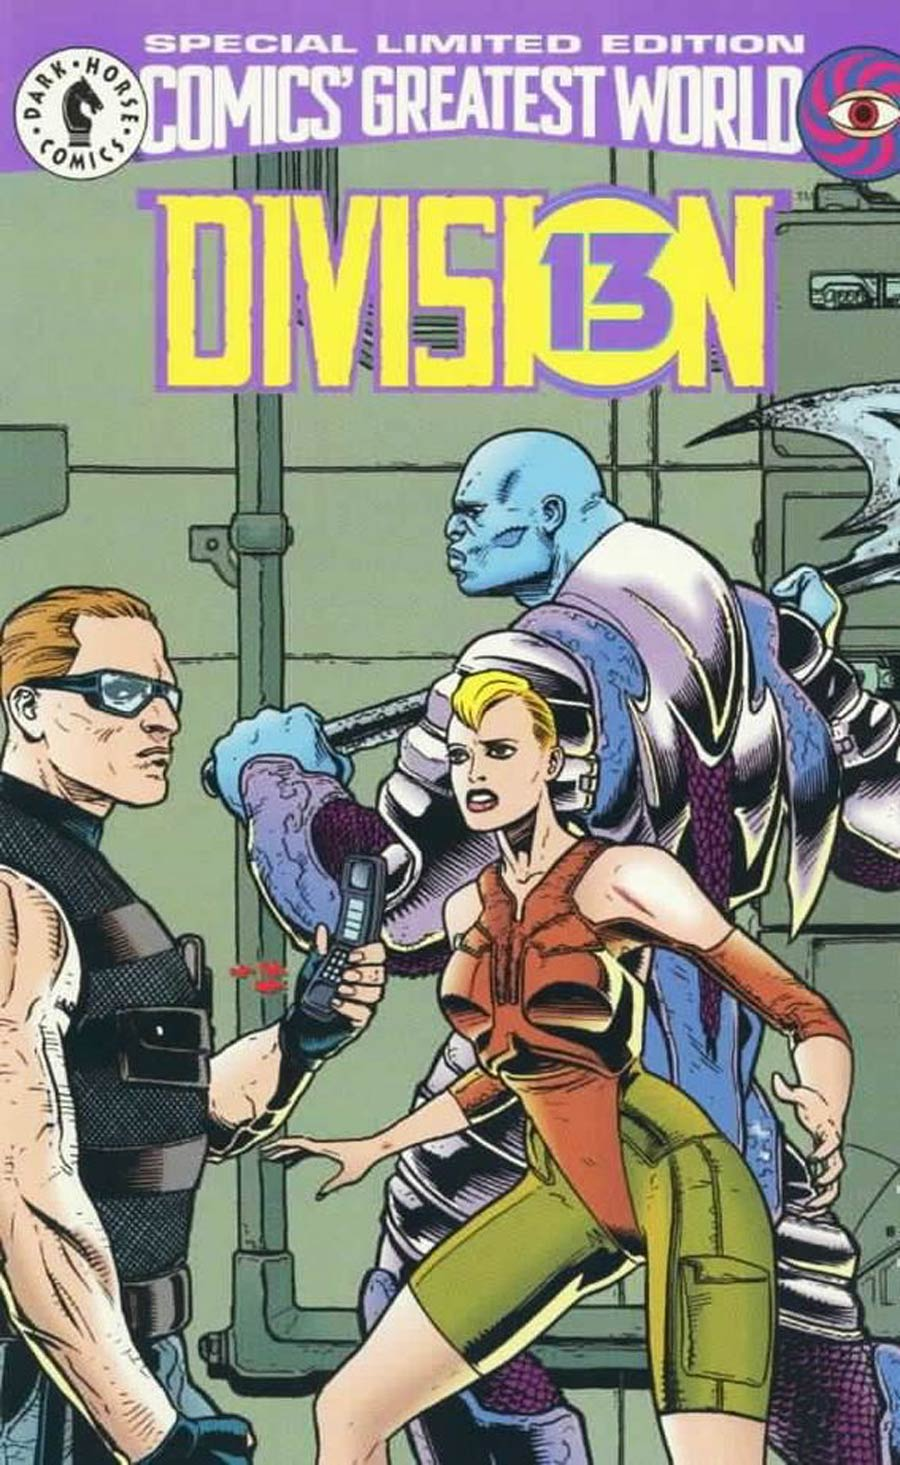 Comics Greatest World Vortex Week #1 Division Cover C Special Limited Edition